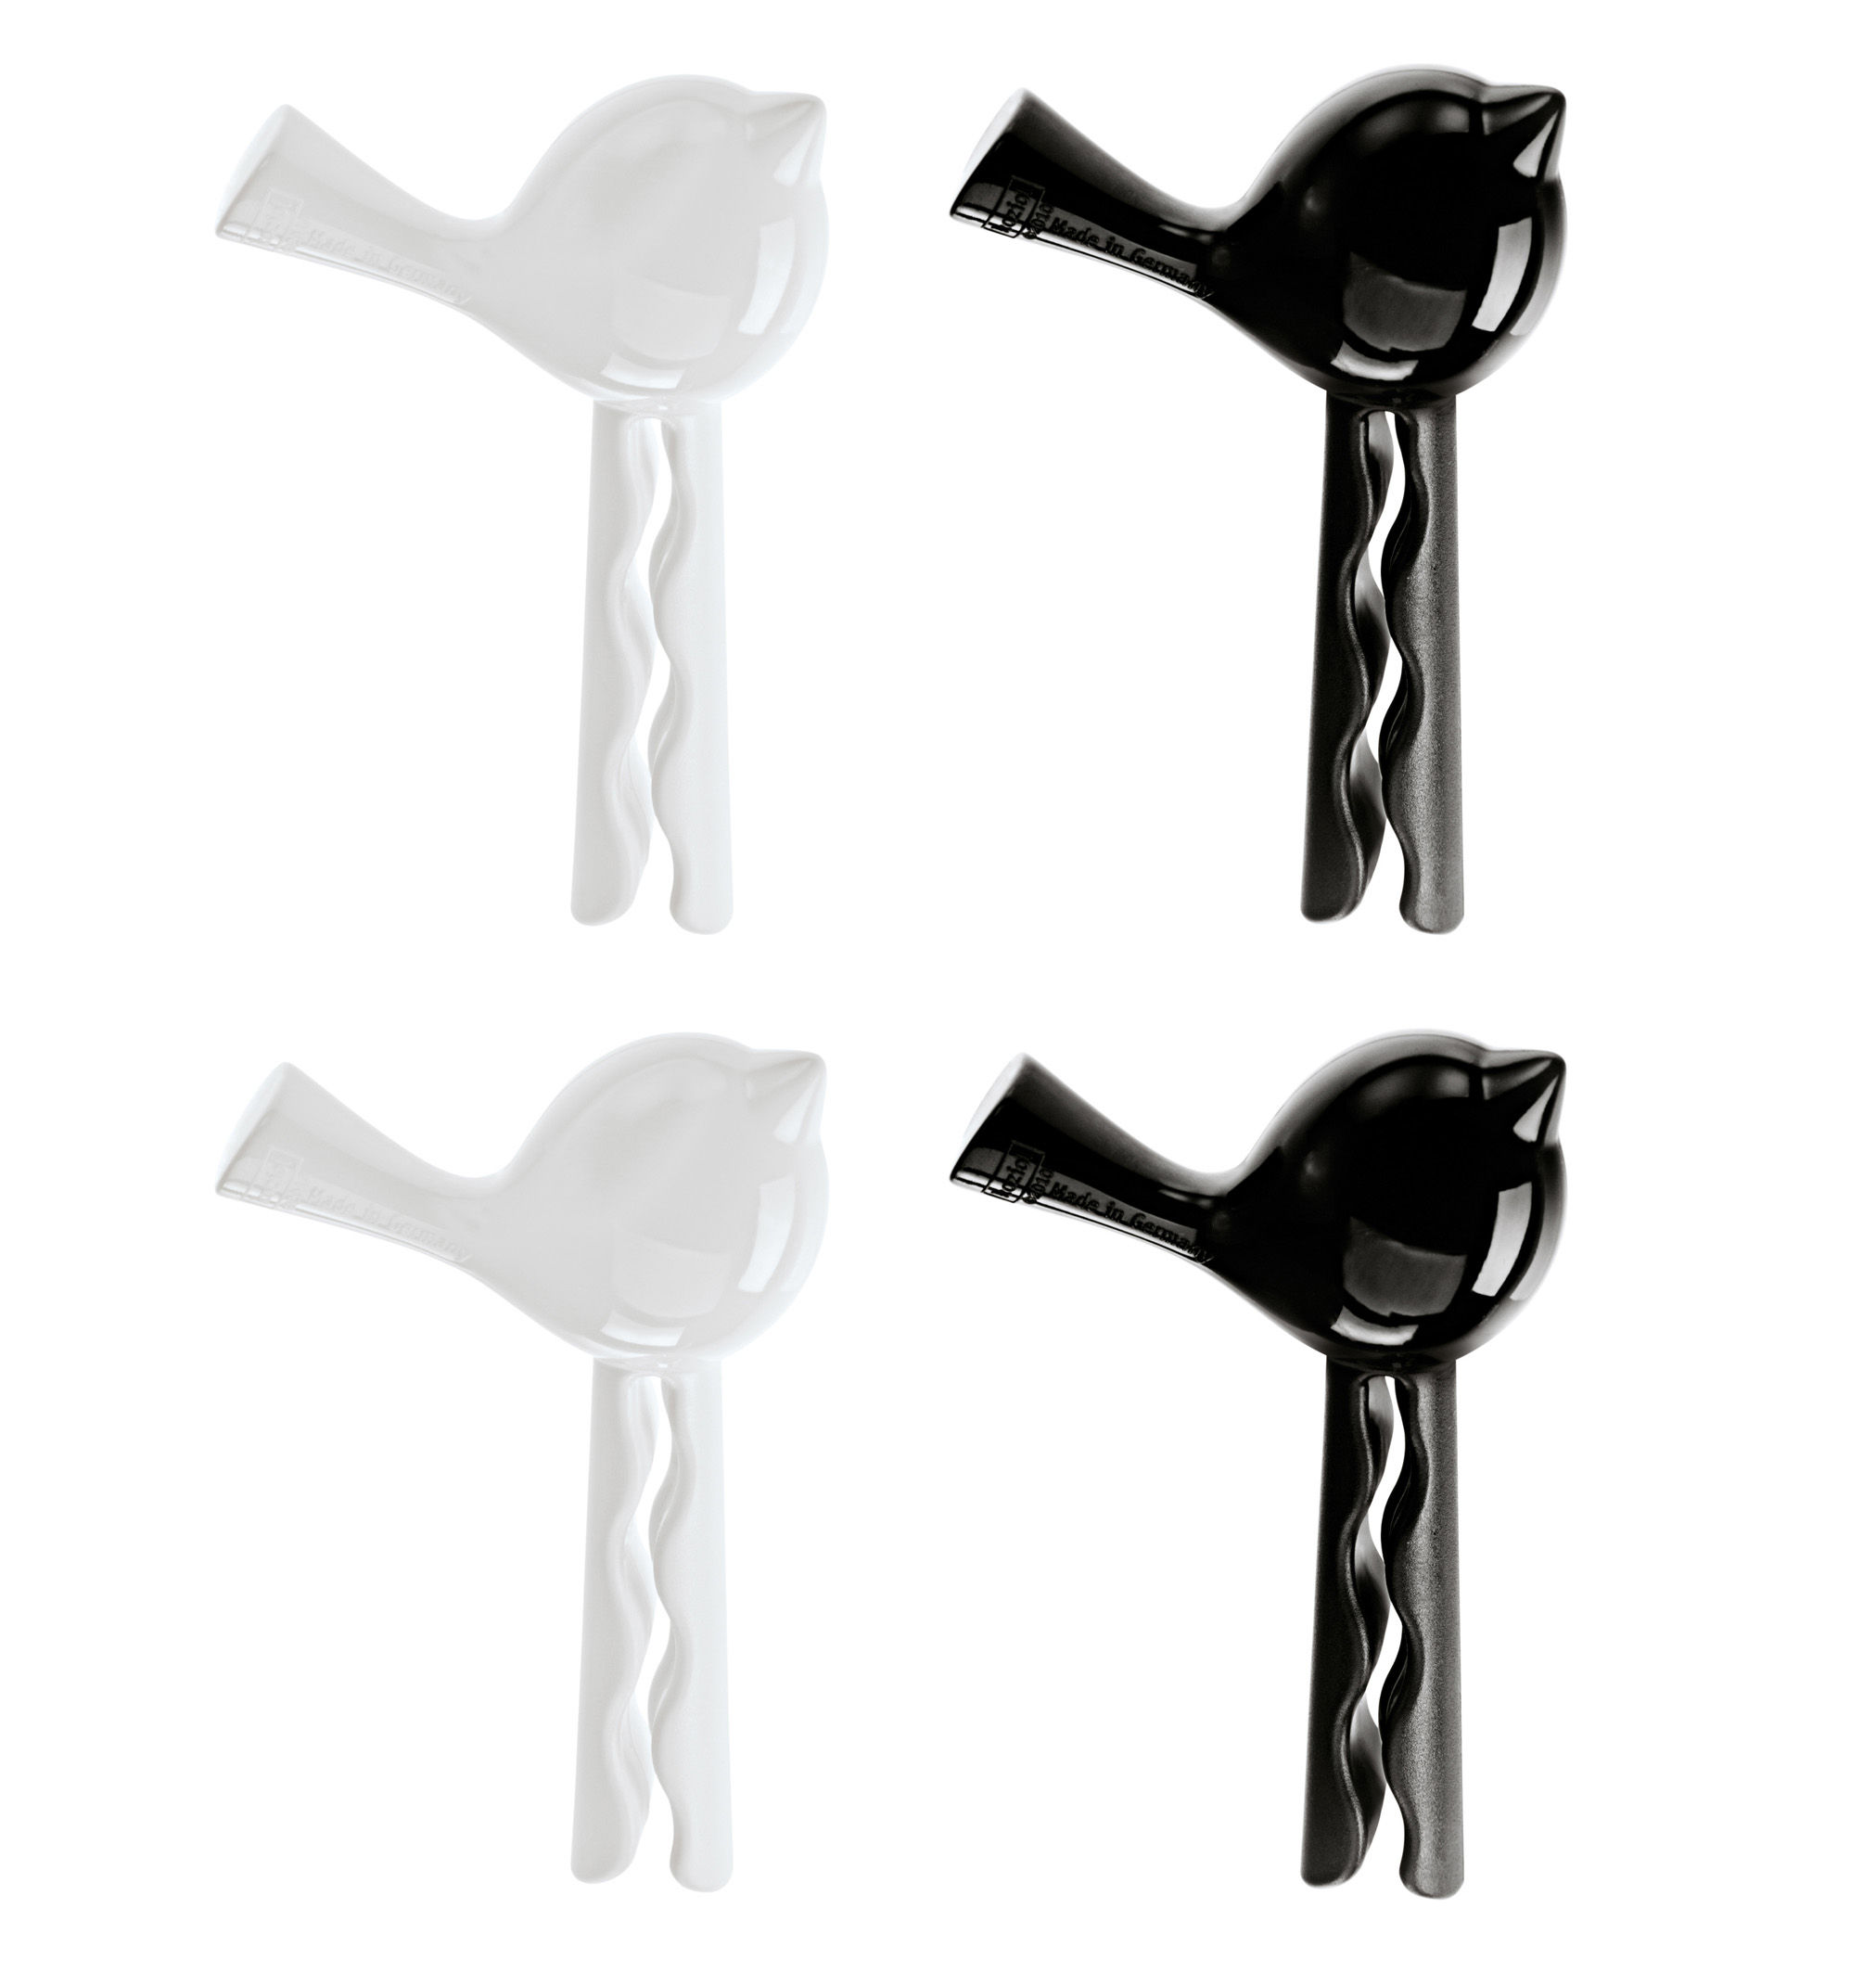 Kitchenware - Fun in the kitchen - PI:P Bag clamp - Set of 4 by Koziol - Black / White - Polycarbonate